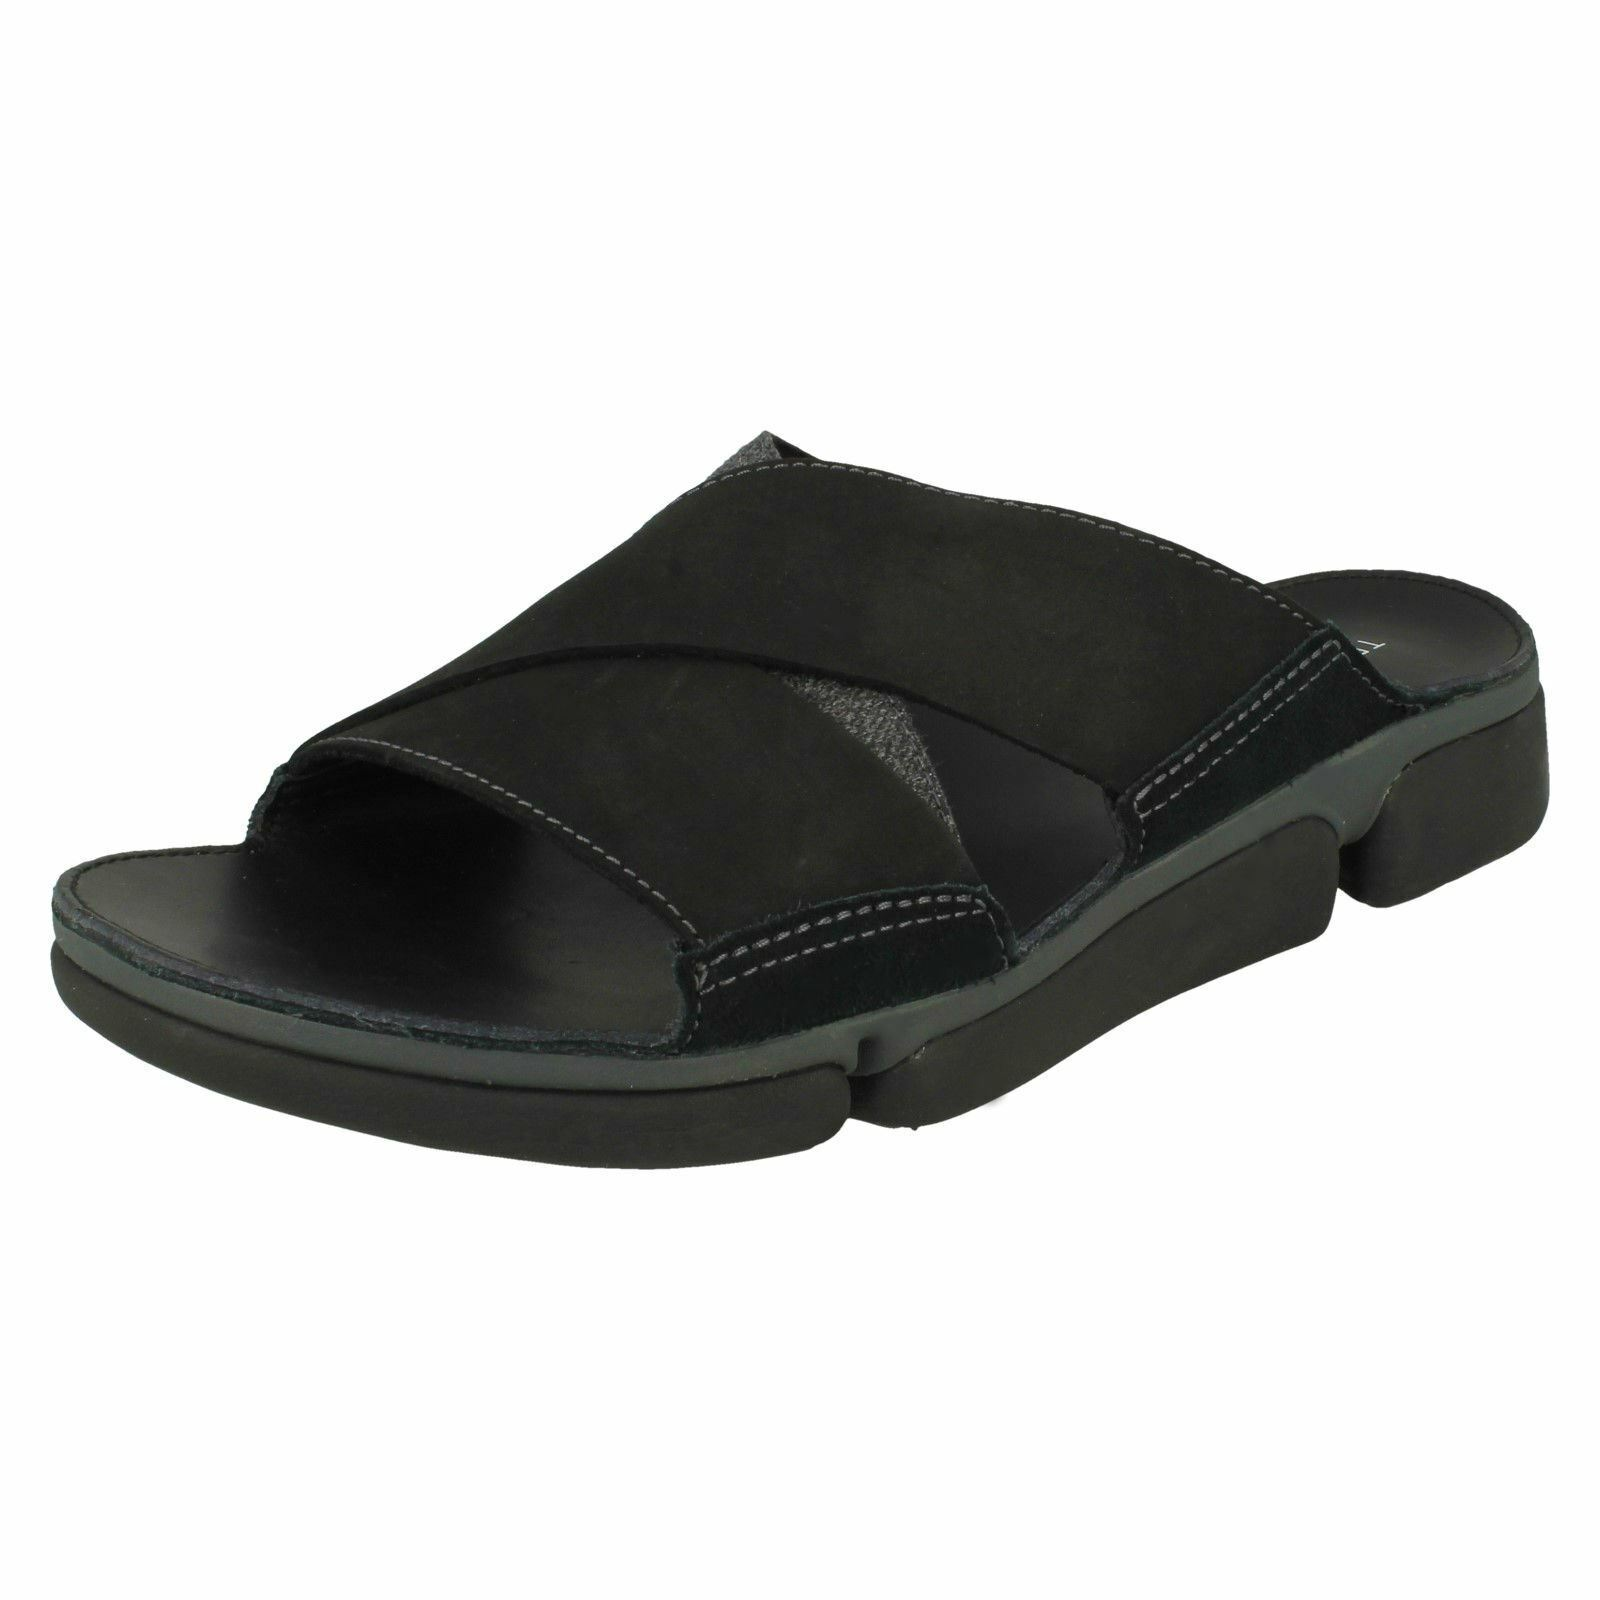 Mens Clarks Trigenic Casual Sandals 'Tri Cove Cross'